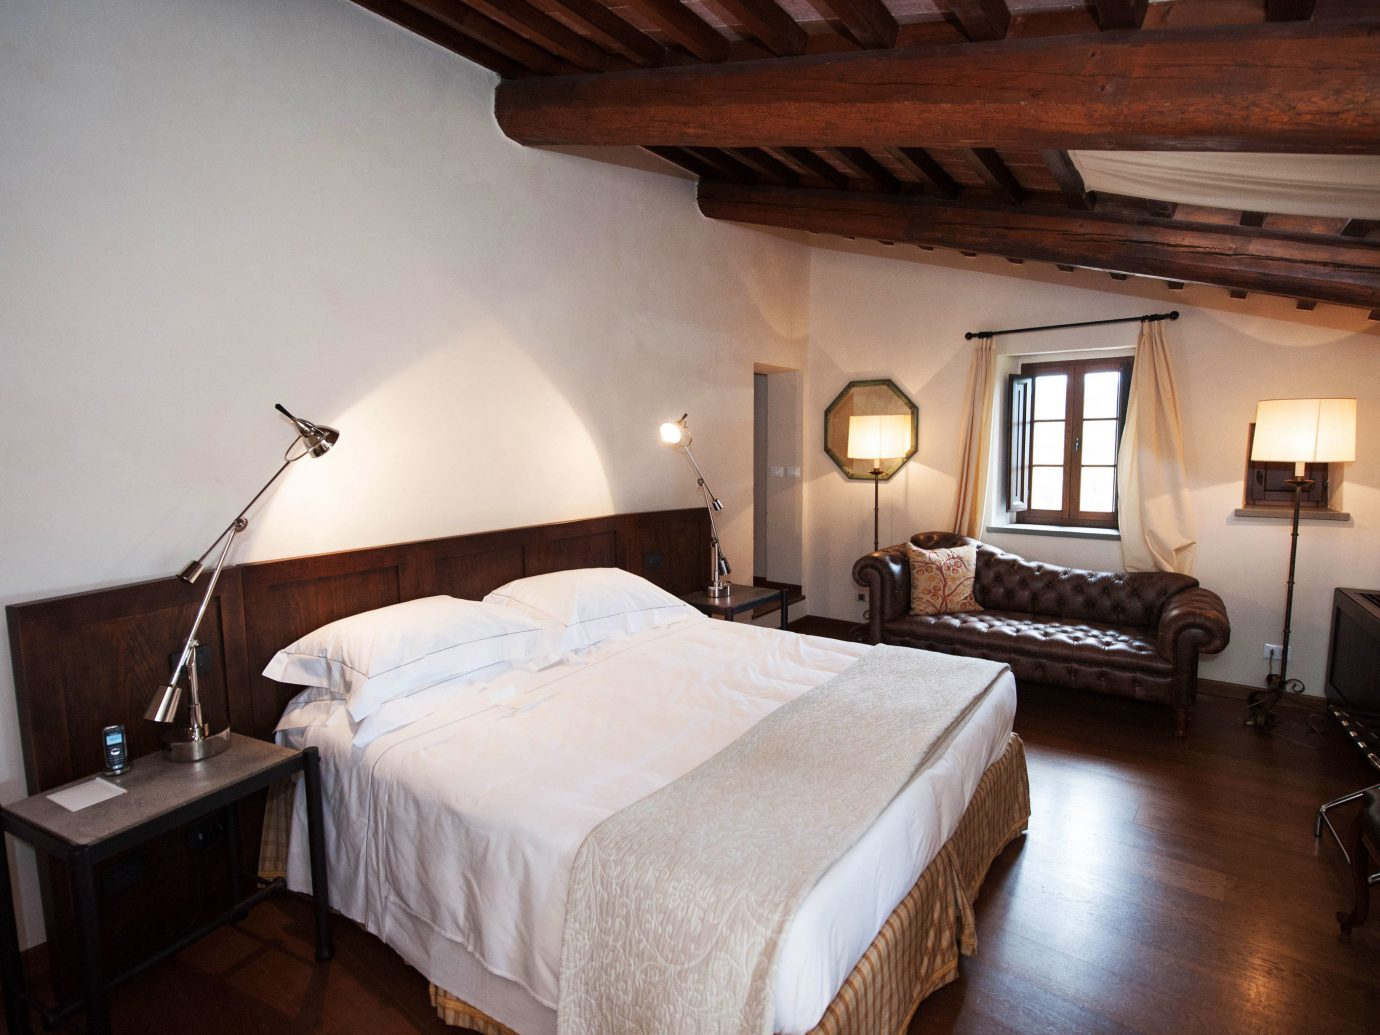 europe Hotels Italy Romance indoor bed wall floor room Bedroom ceiling hotel property building estate cottage Villa Suite real estate farmhouse lamp